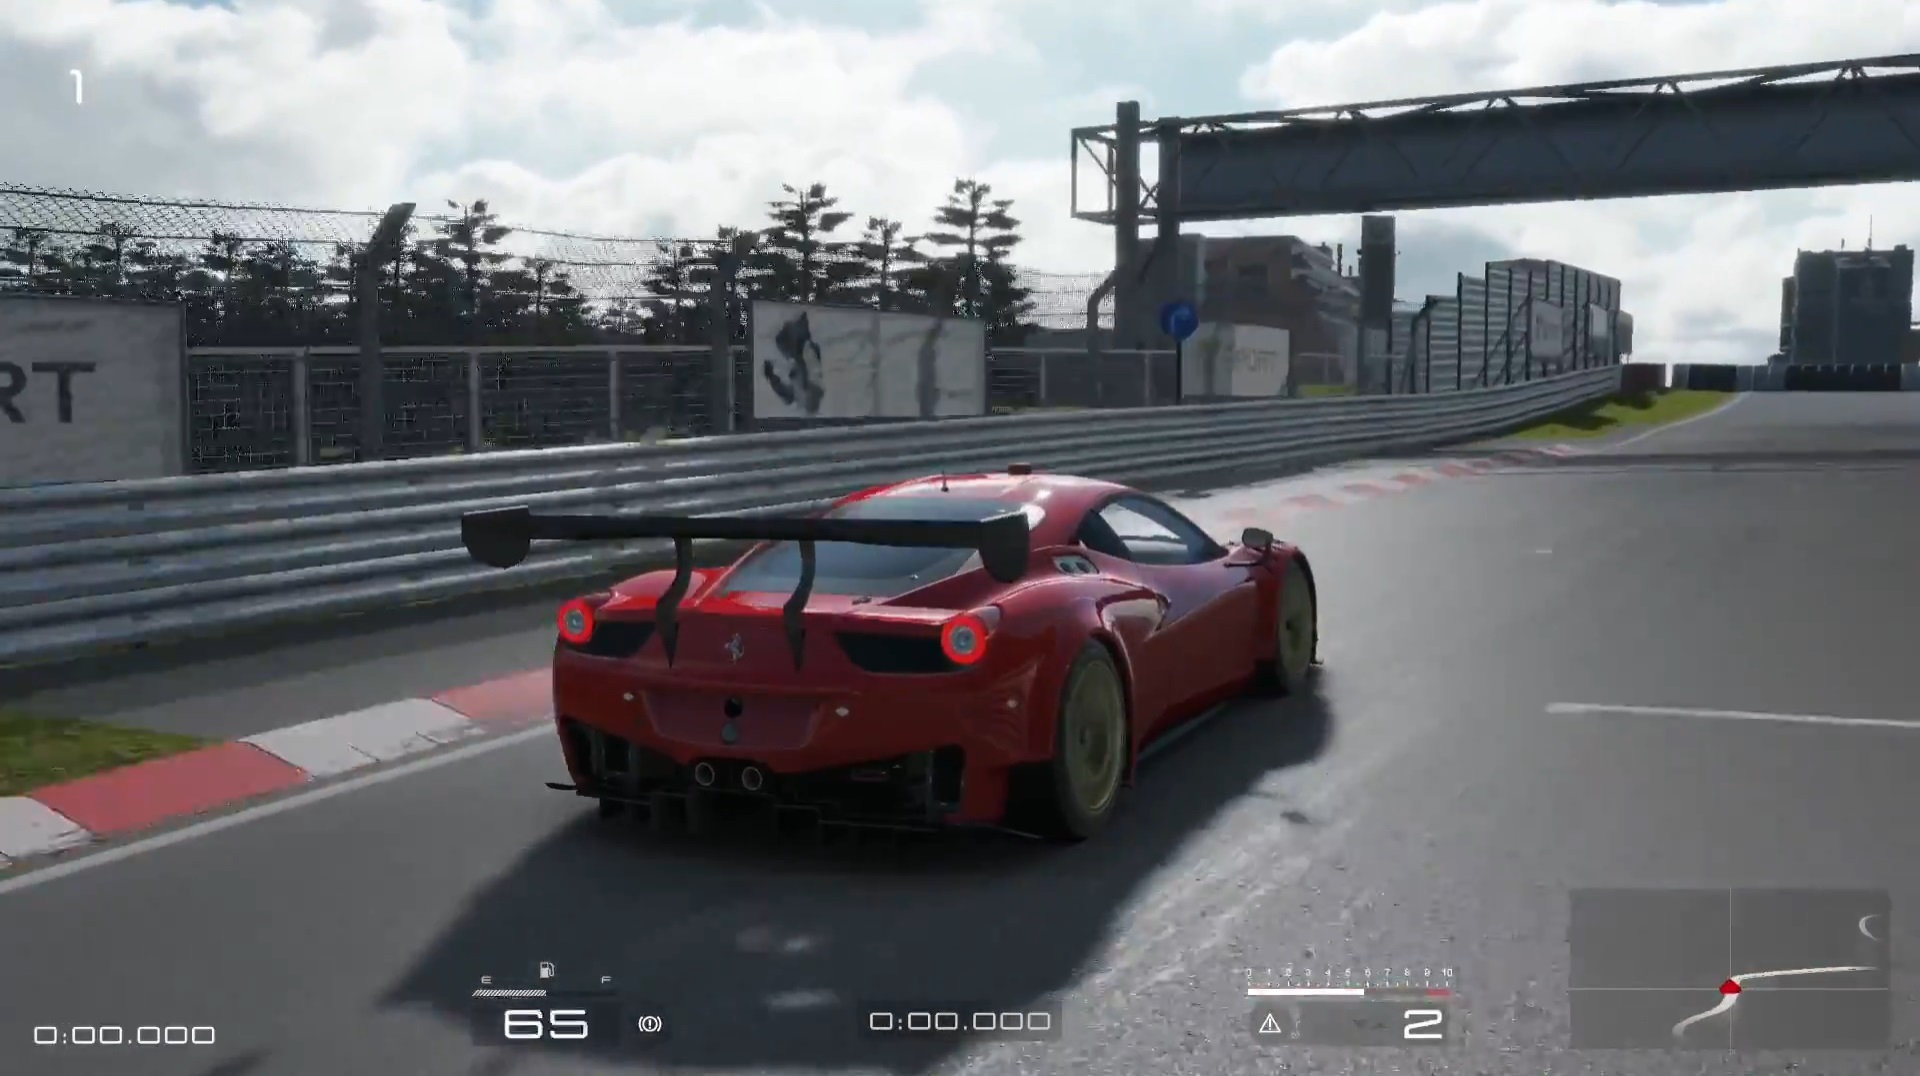 Gran Turismo Sport Ferrari Gt3 Gameplay Shows Off Photorealistic Graphics But Engine Sounds Disappoint Video Player One